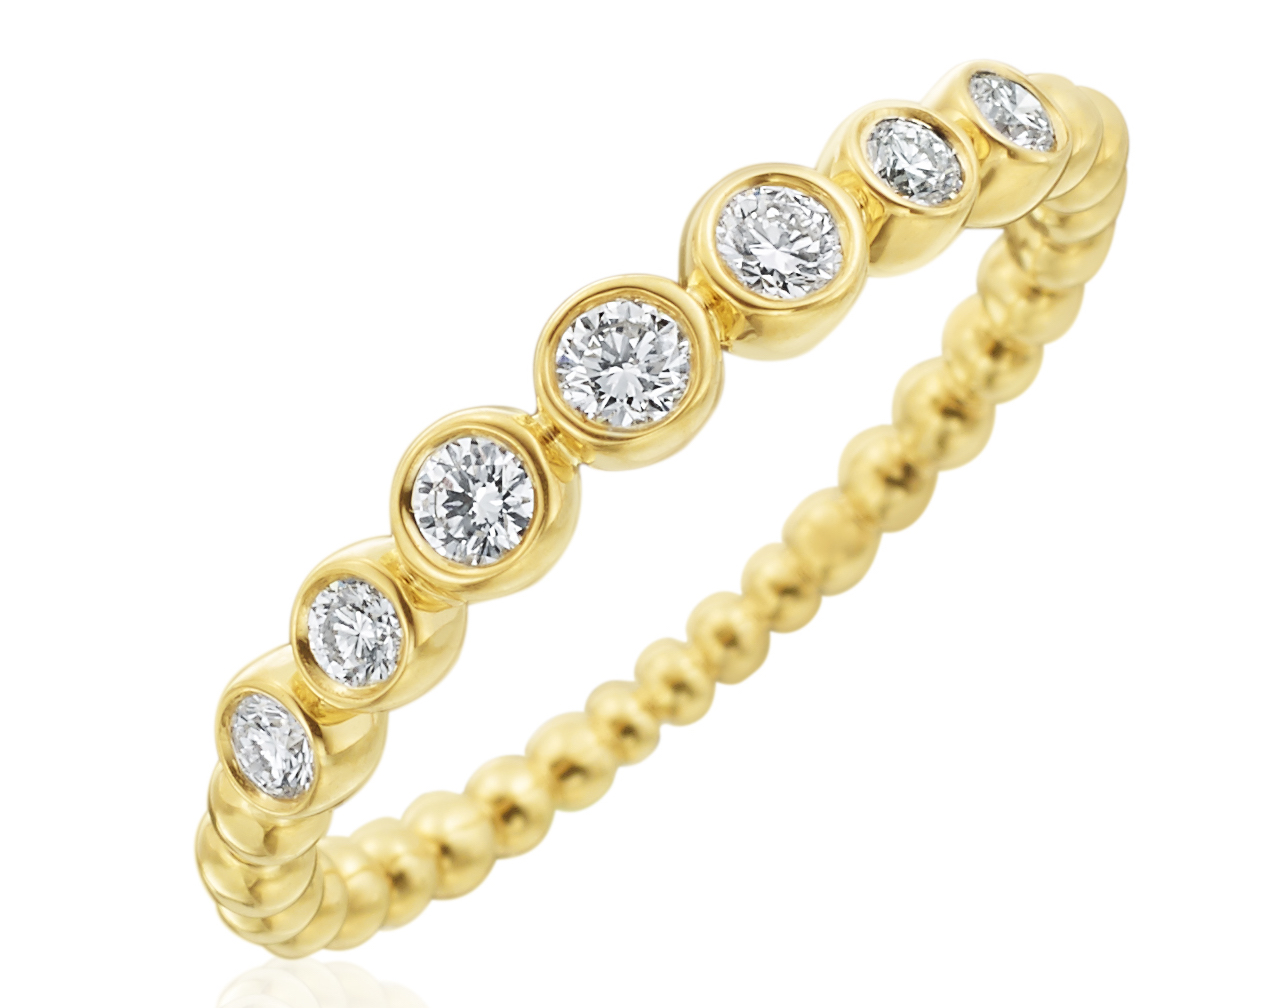 Gumuchian diamond Nutmeg ring | JCK On Your Market